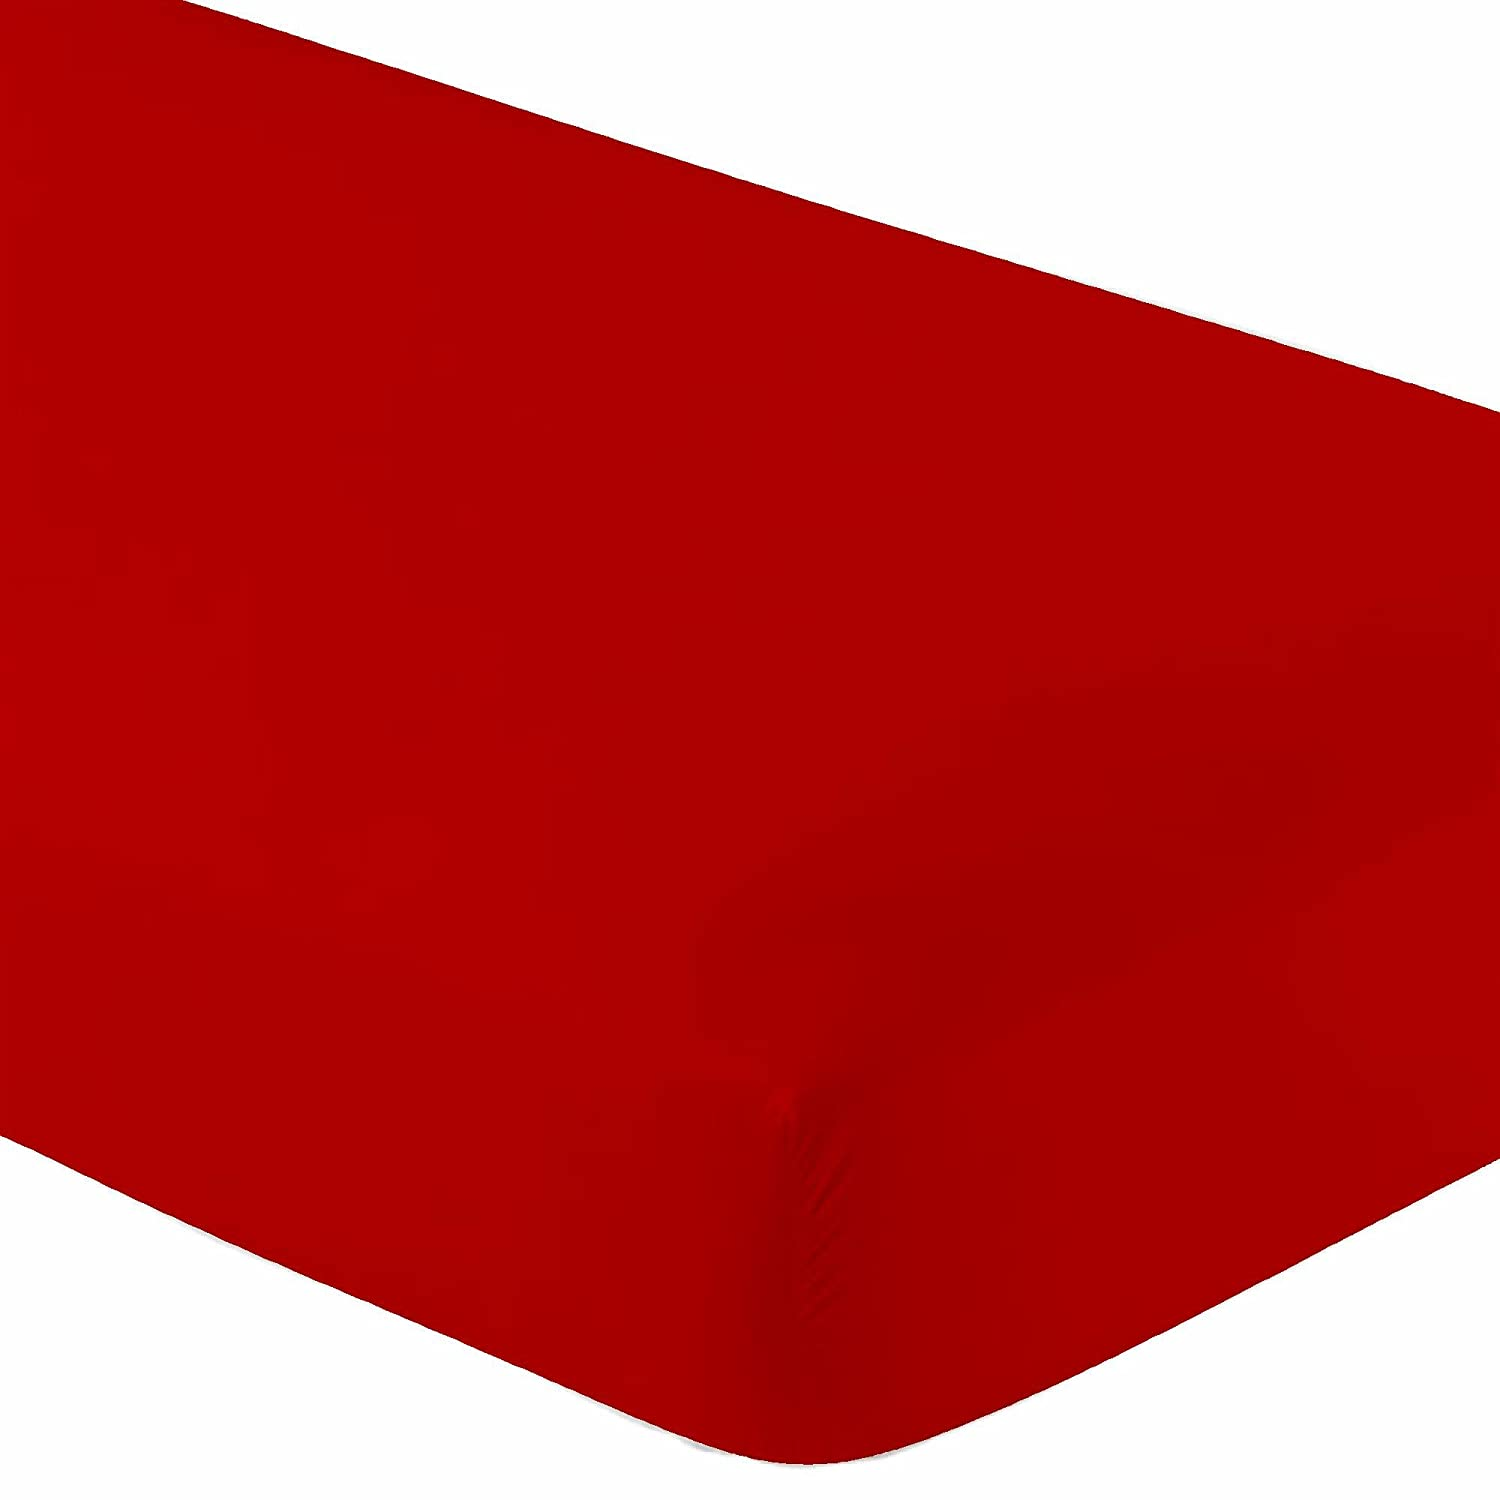 """Crescent Knit Jersey Red 100% Cotton 2 Twin XL Fitted Bed Sheets (2-Pack) Soft and Comfy - Twin Extra Long,15"""" Deep Pocket, 39"""" x 80"""" Great for Dorm, Hospital and Split King Dual Adjustable Beds (Red)"""